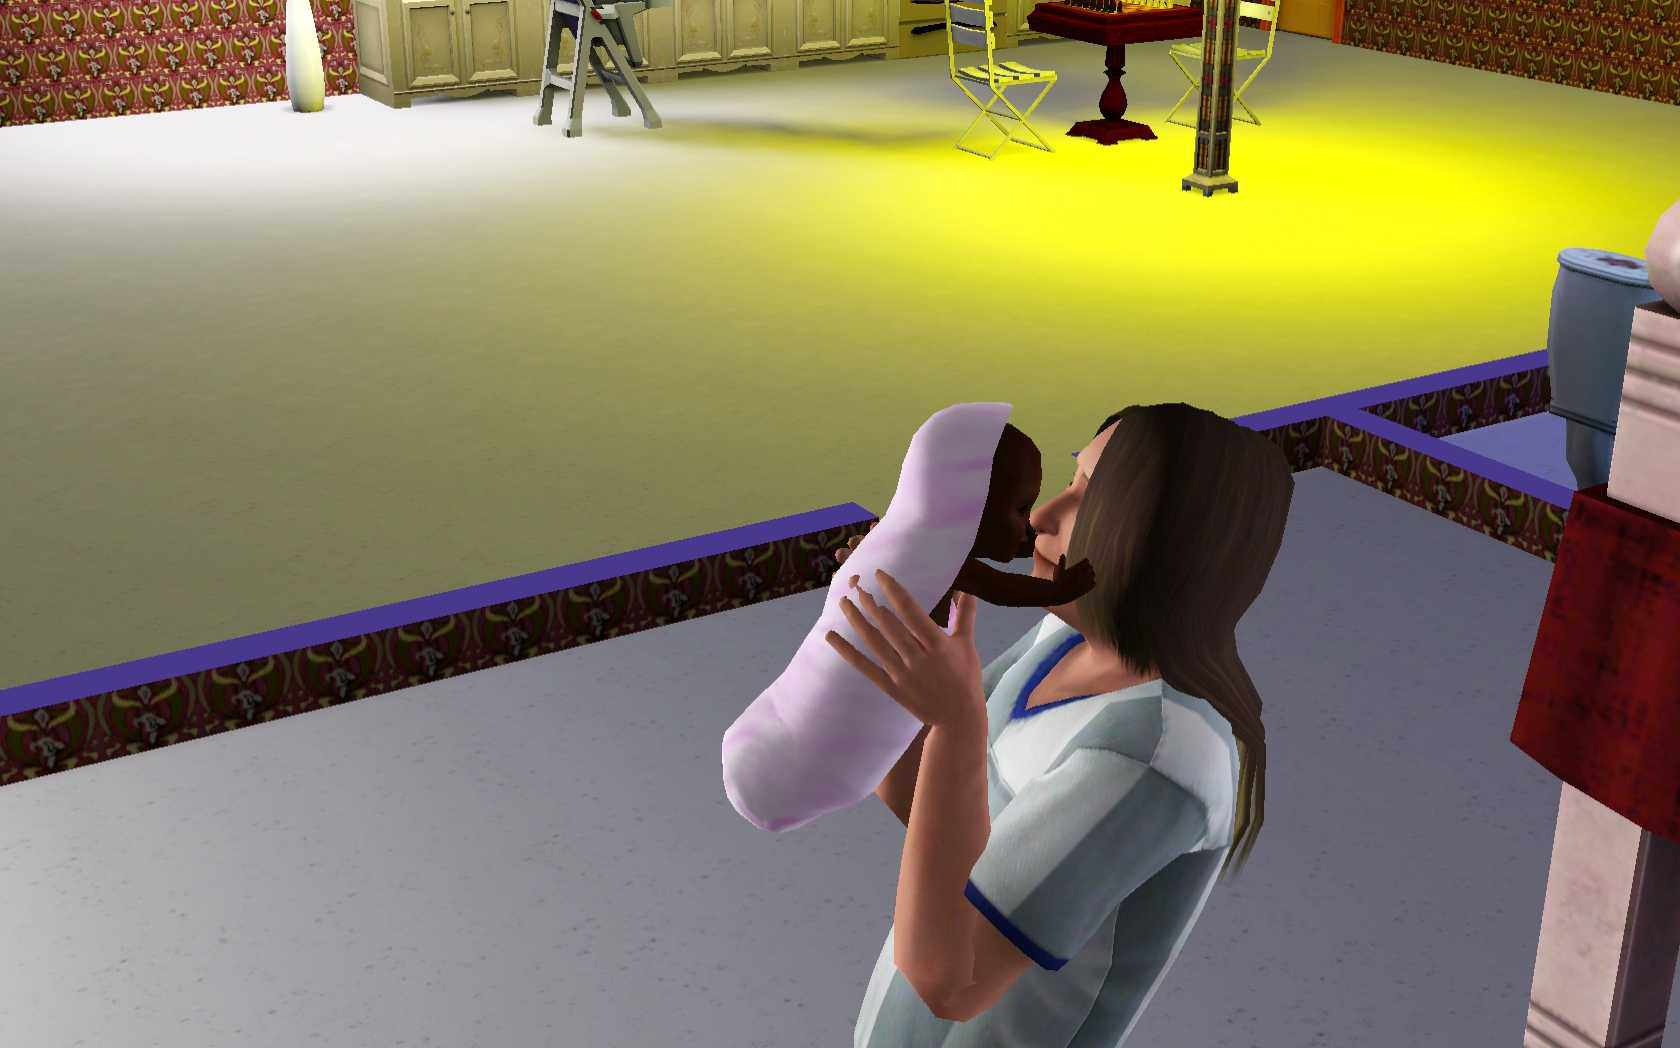 Sims 3 Parenting: Kiss The Baby How